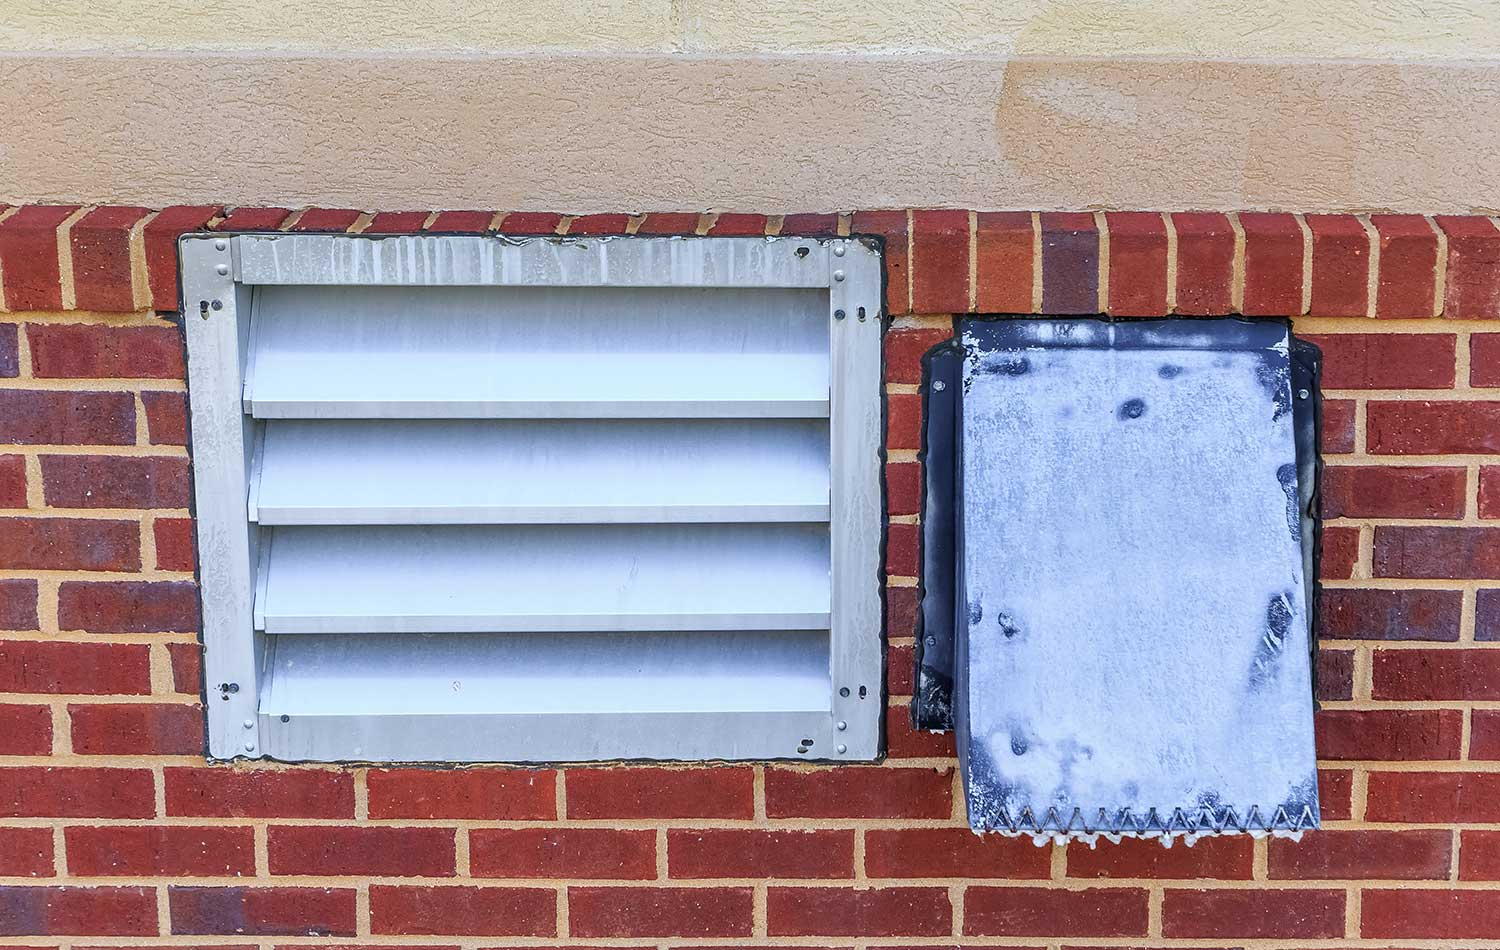 Industrial laundry room dryer vent on the back facade of a hotel